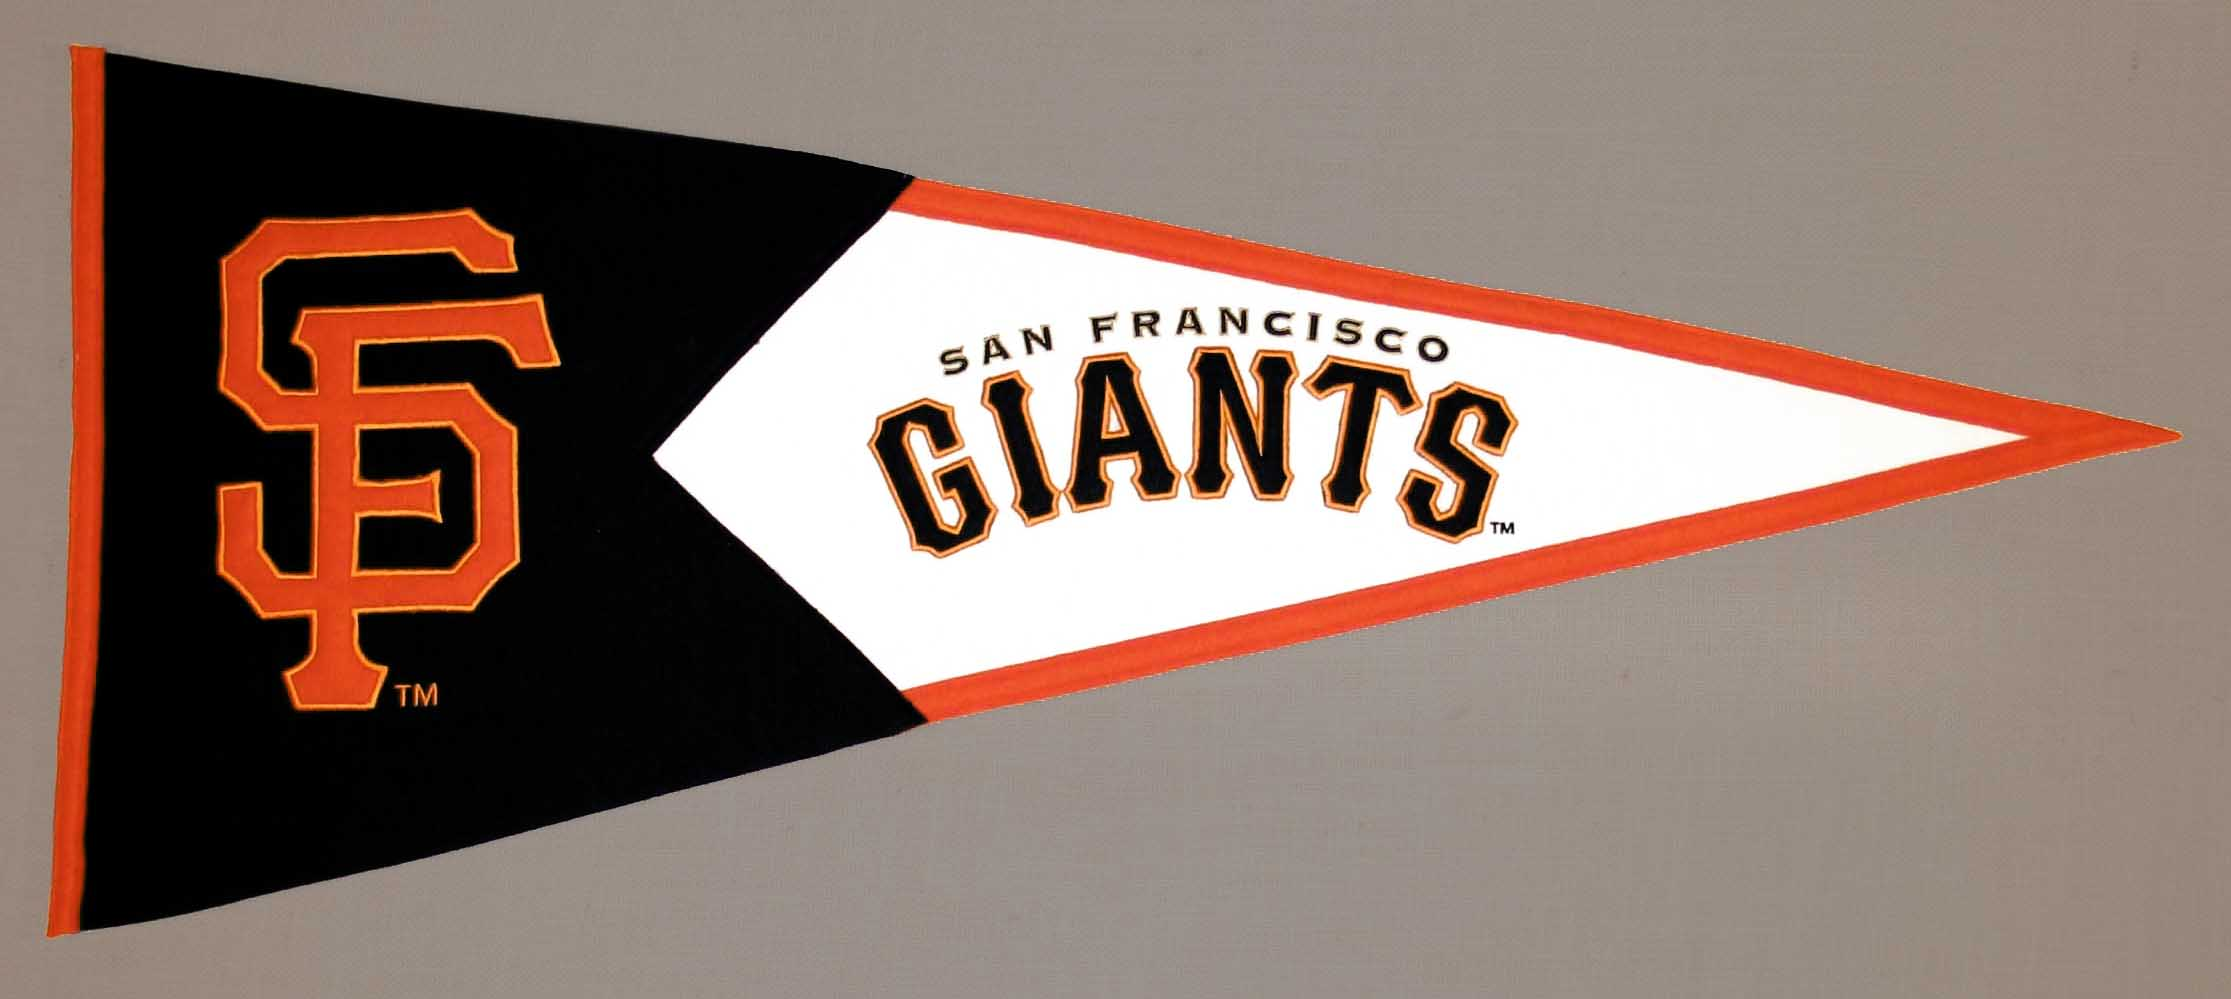 San Francisco Giants wallpapers HD backgrounds download Facebook